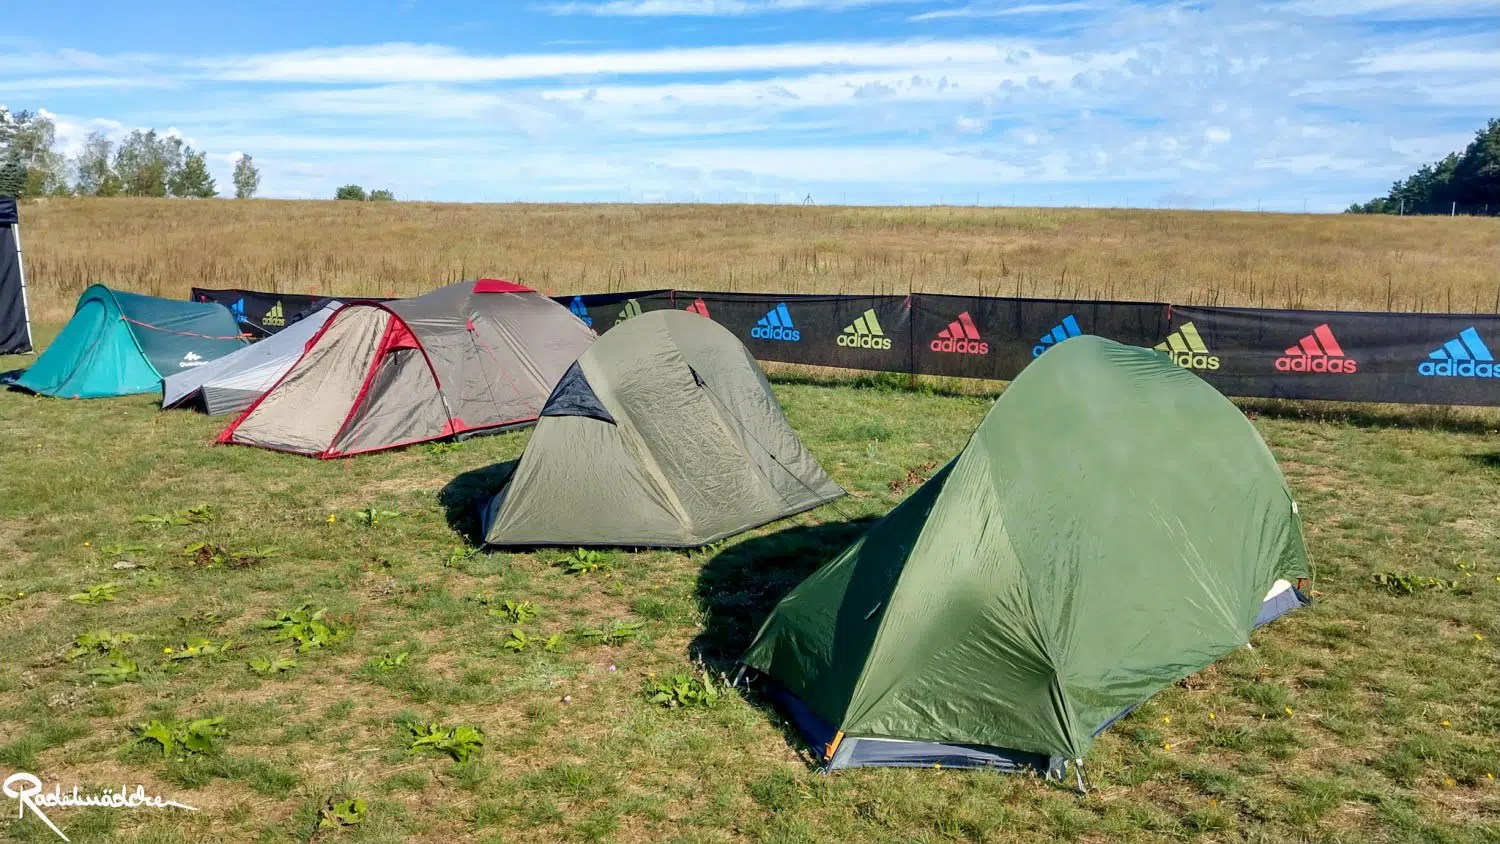 tents at a campsite